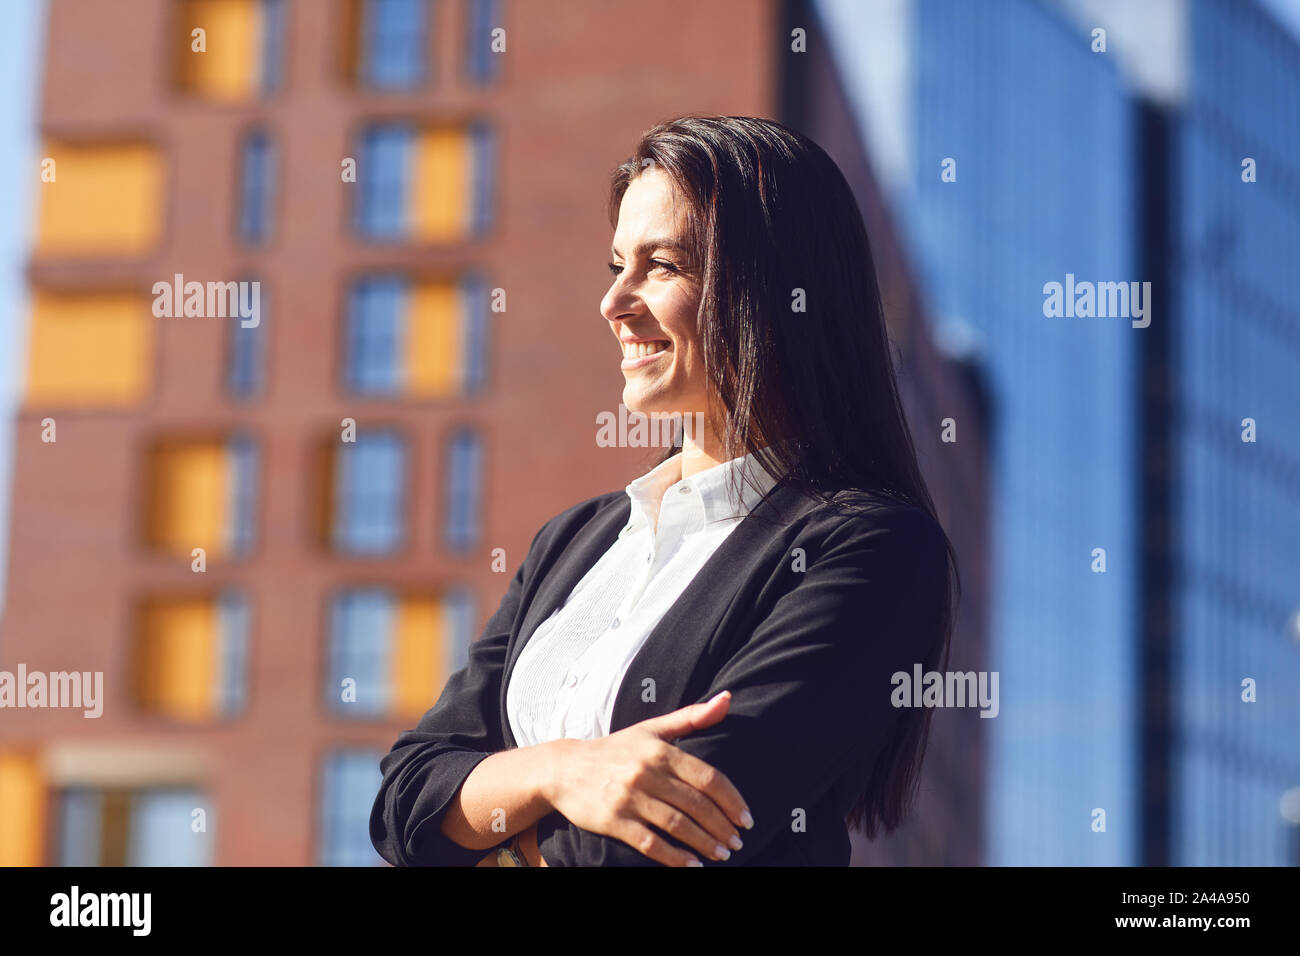 A happy businesswoman is smiling on the background of a business building outdoors. Stock Photo